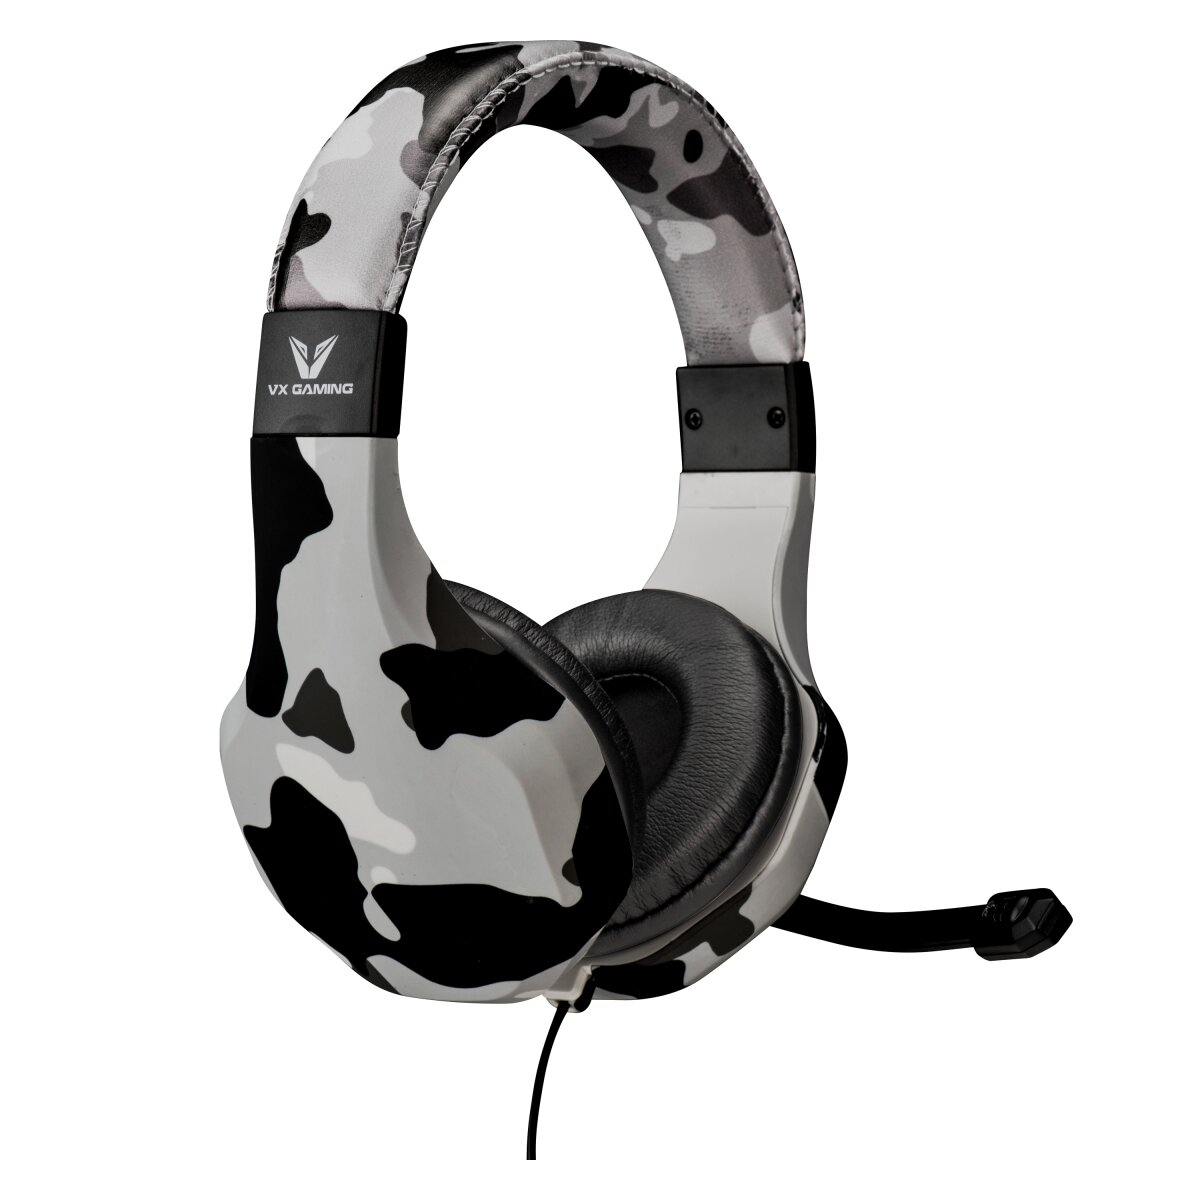 VX Gaming Camo series 5 in 1 Gaming Headphone for PS3/PS4/XB1/PC and Mobile